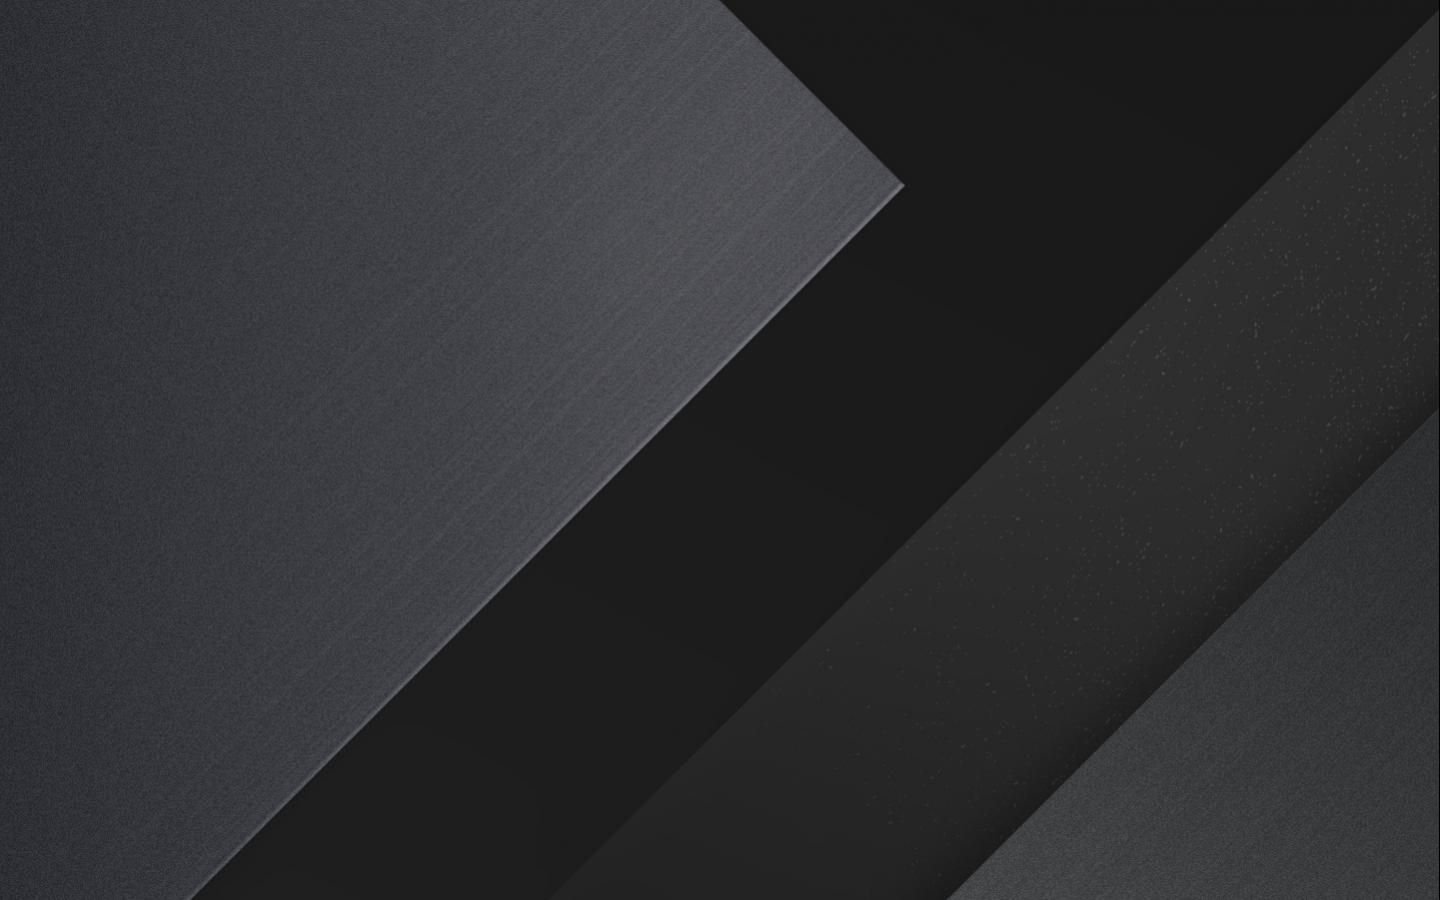 Samsung Galaxy S7 S7 Edge Stock Wallpapers Download: Diagonal Lines 5 For Samsung Galaxy S7 And Edge Wallpaper